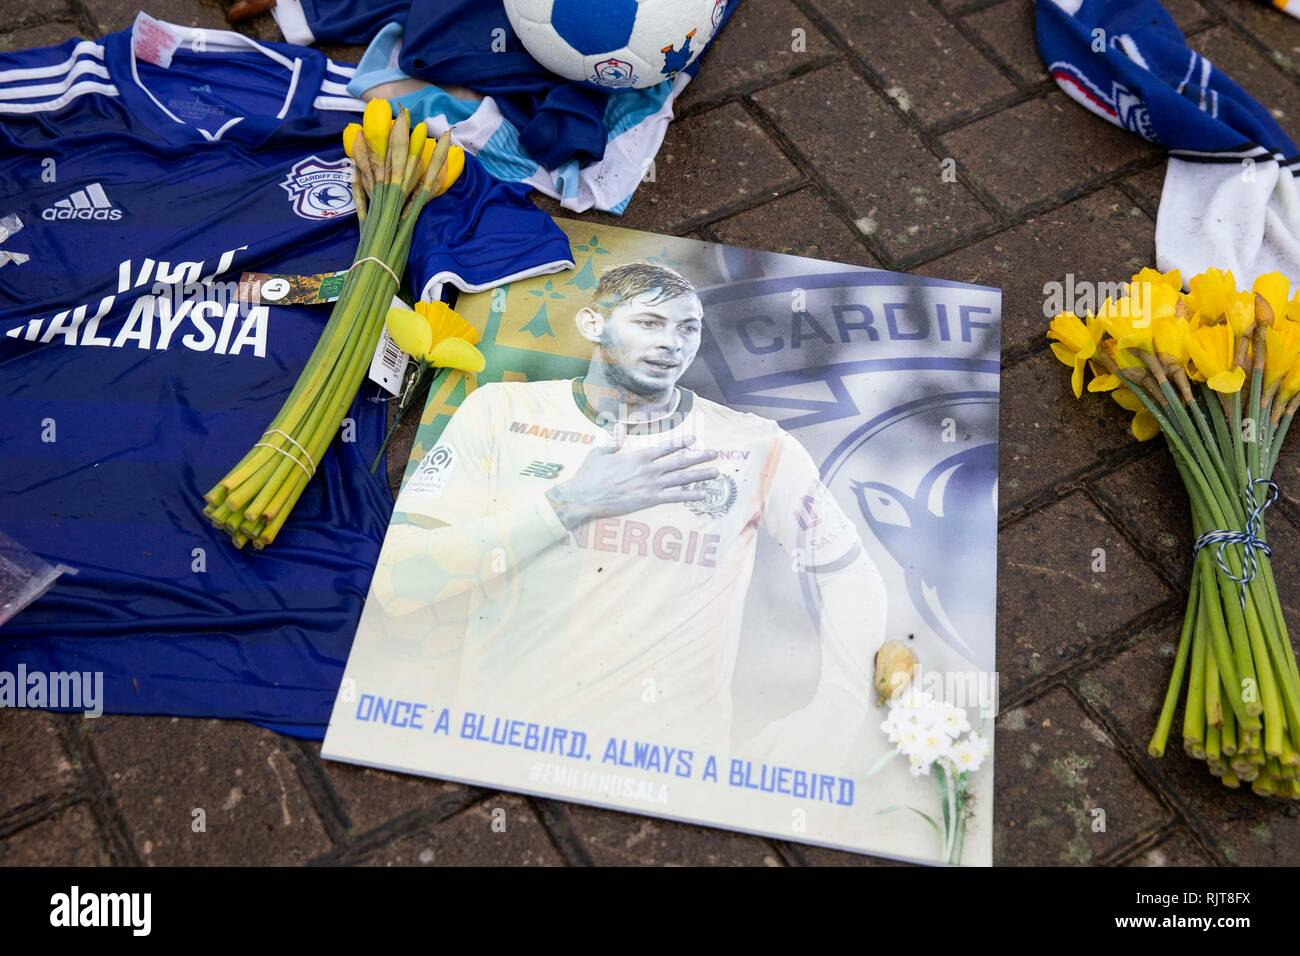 Cardiff, Wales, UK. February 8th 2019. Tributes to Emiliano Sala outside Cardiff City Stadium on the morning after a body retrieved from the light aircraft wreck in the English Channel was identified as being that of Sala. Credit: Mark Hawkins/Alamy Live News - Stock Image